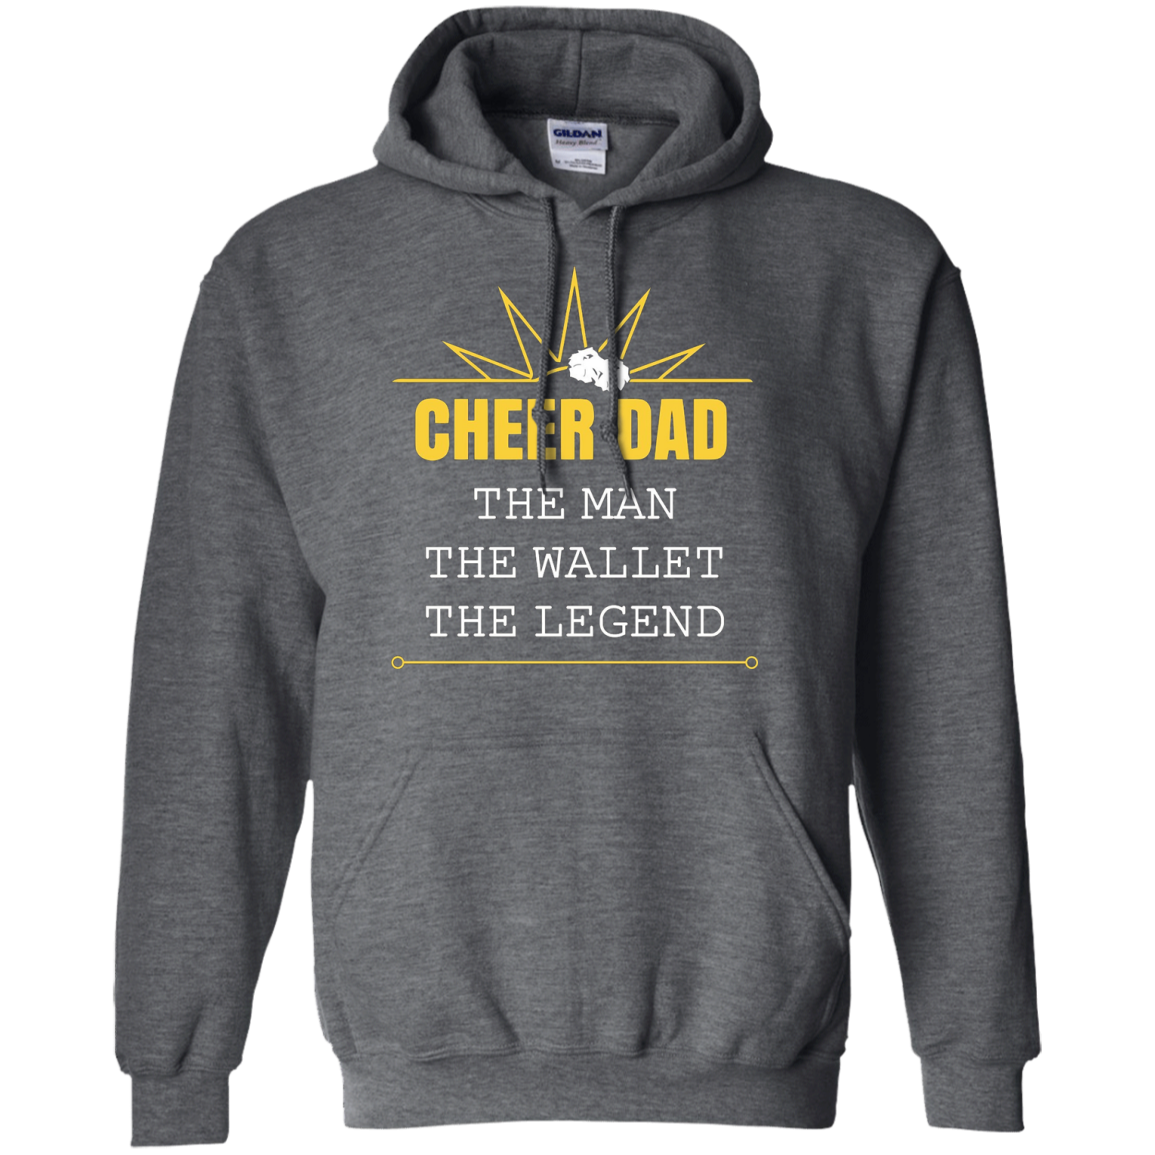 Cheer Dad, the man, legend, wallet - Funny Dad Shirt